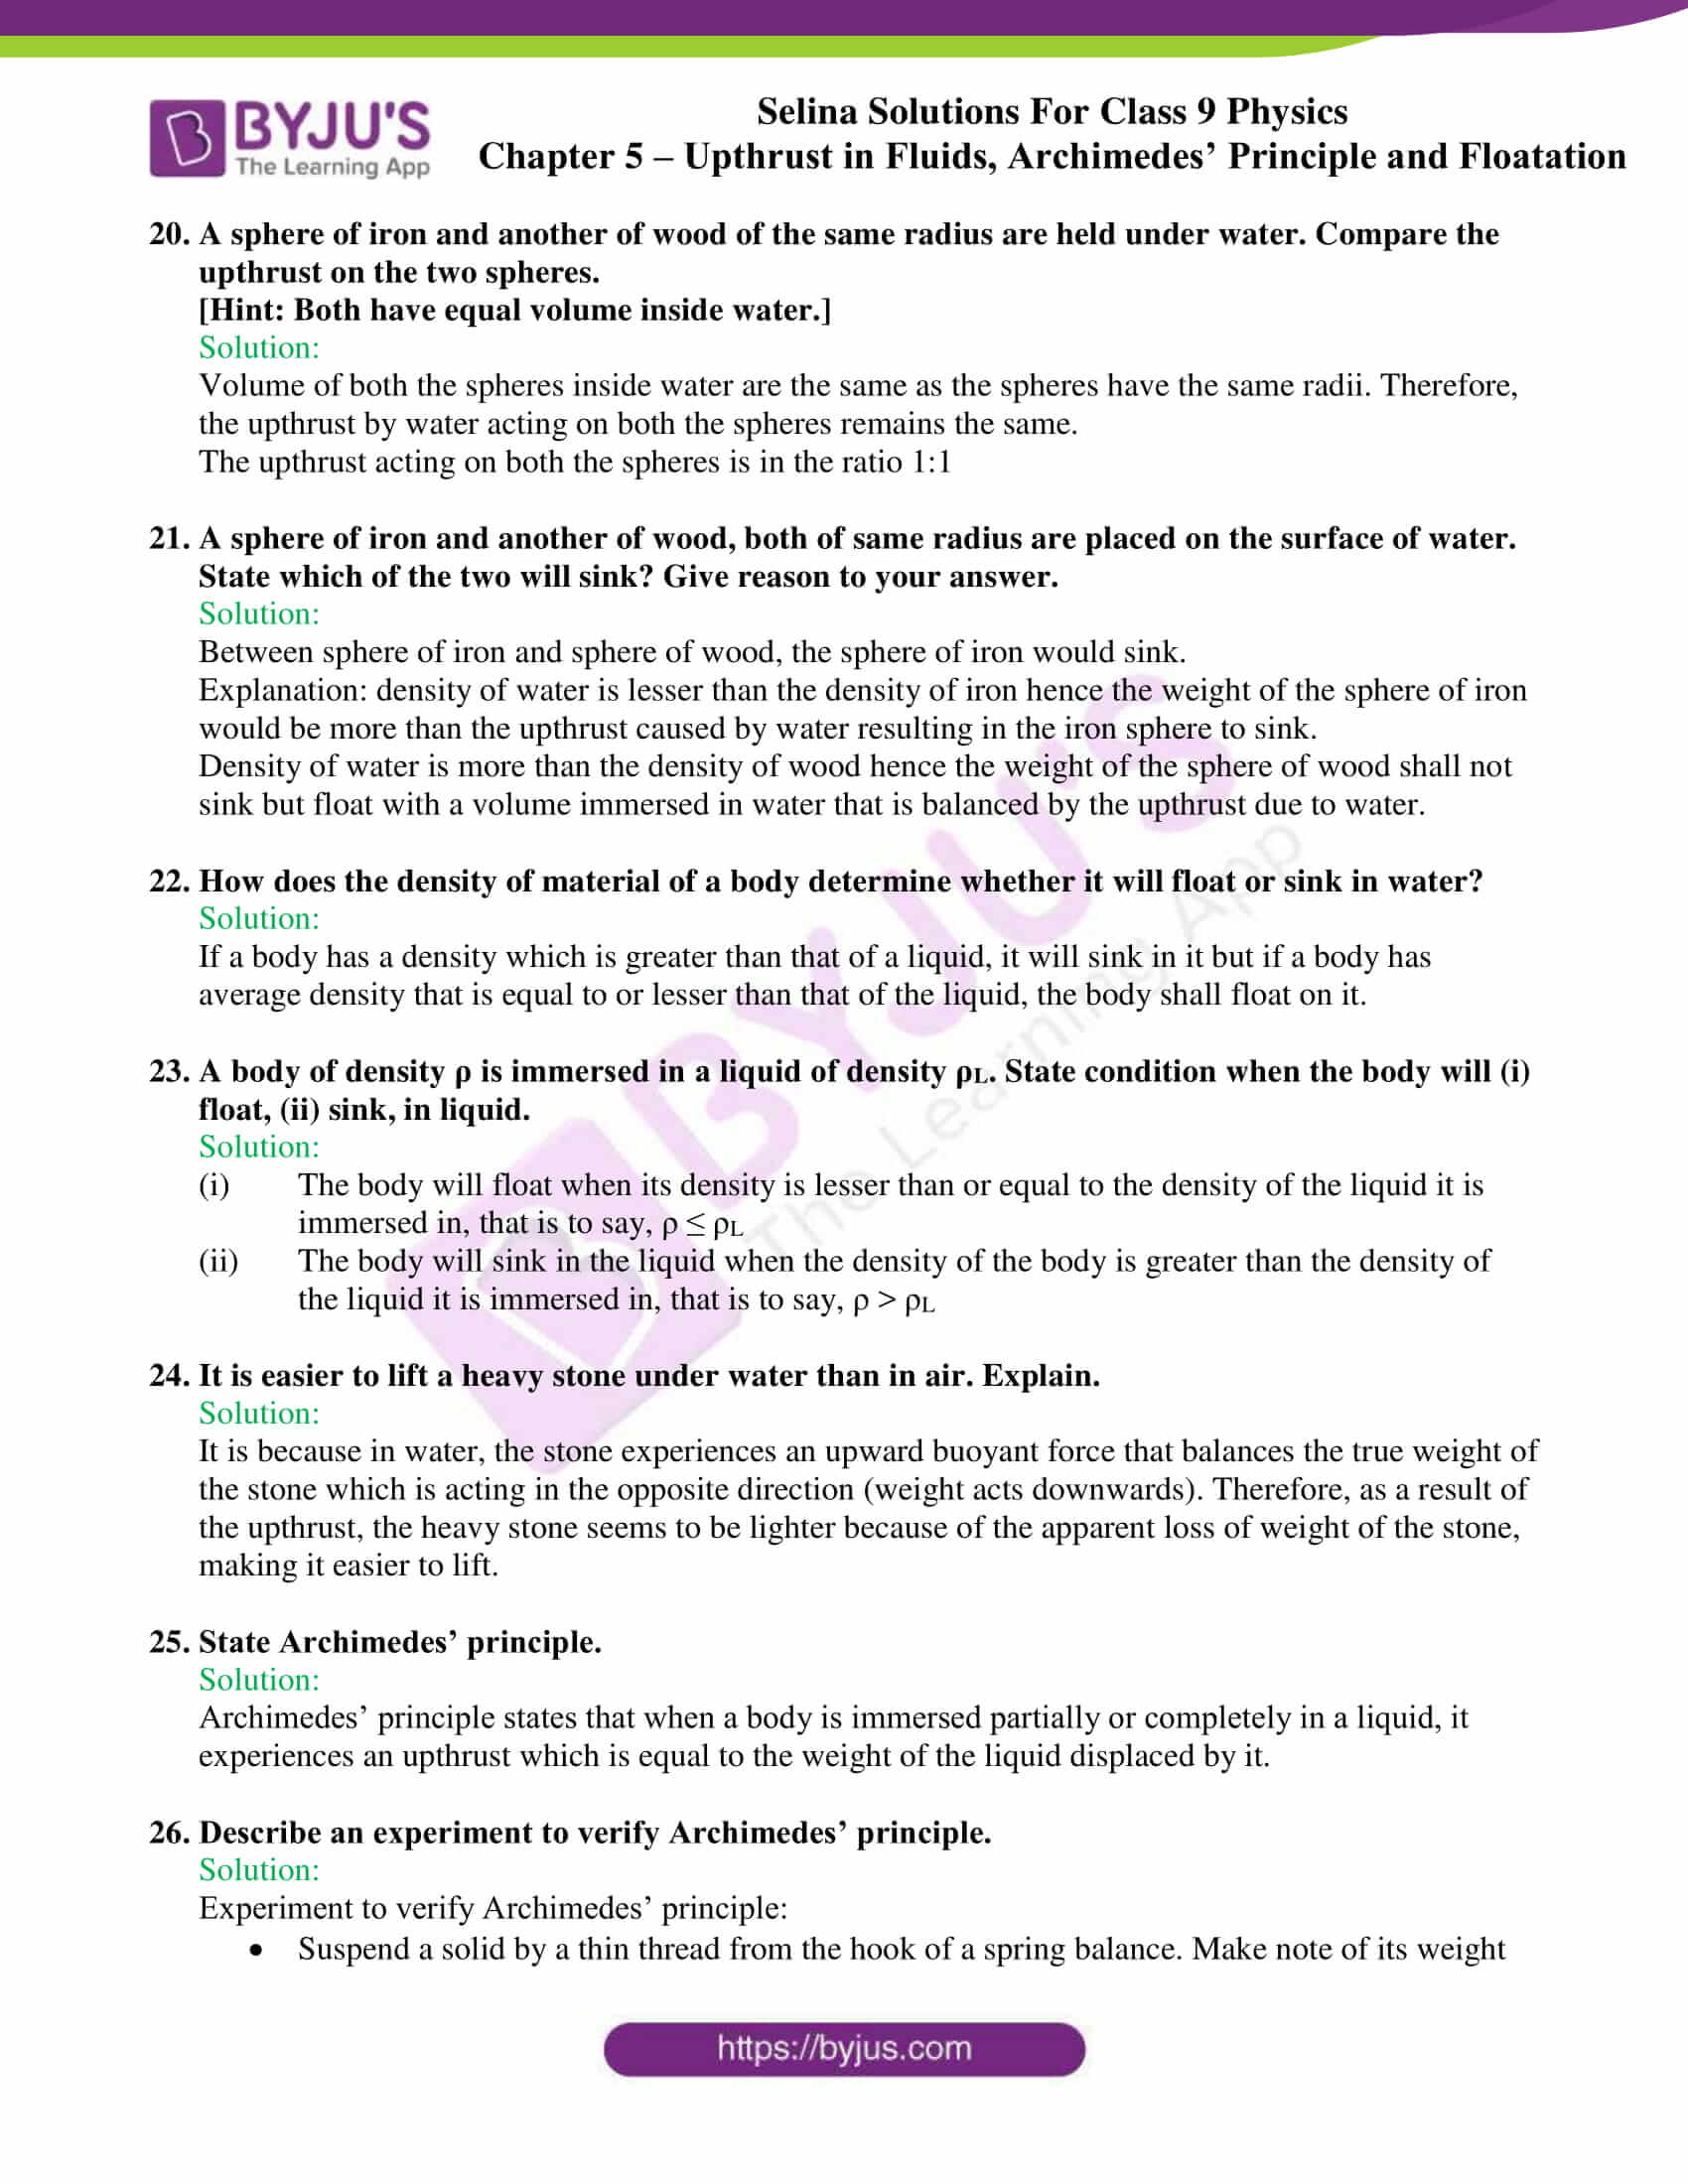 selina solutions class 9 physics chapter 5 part 07